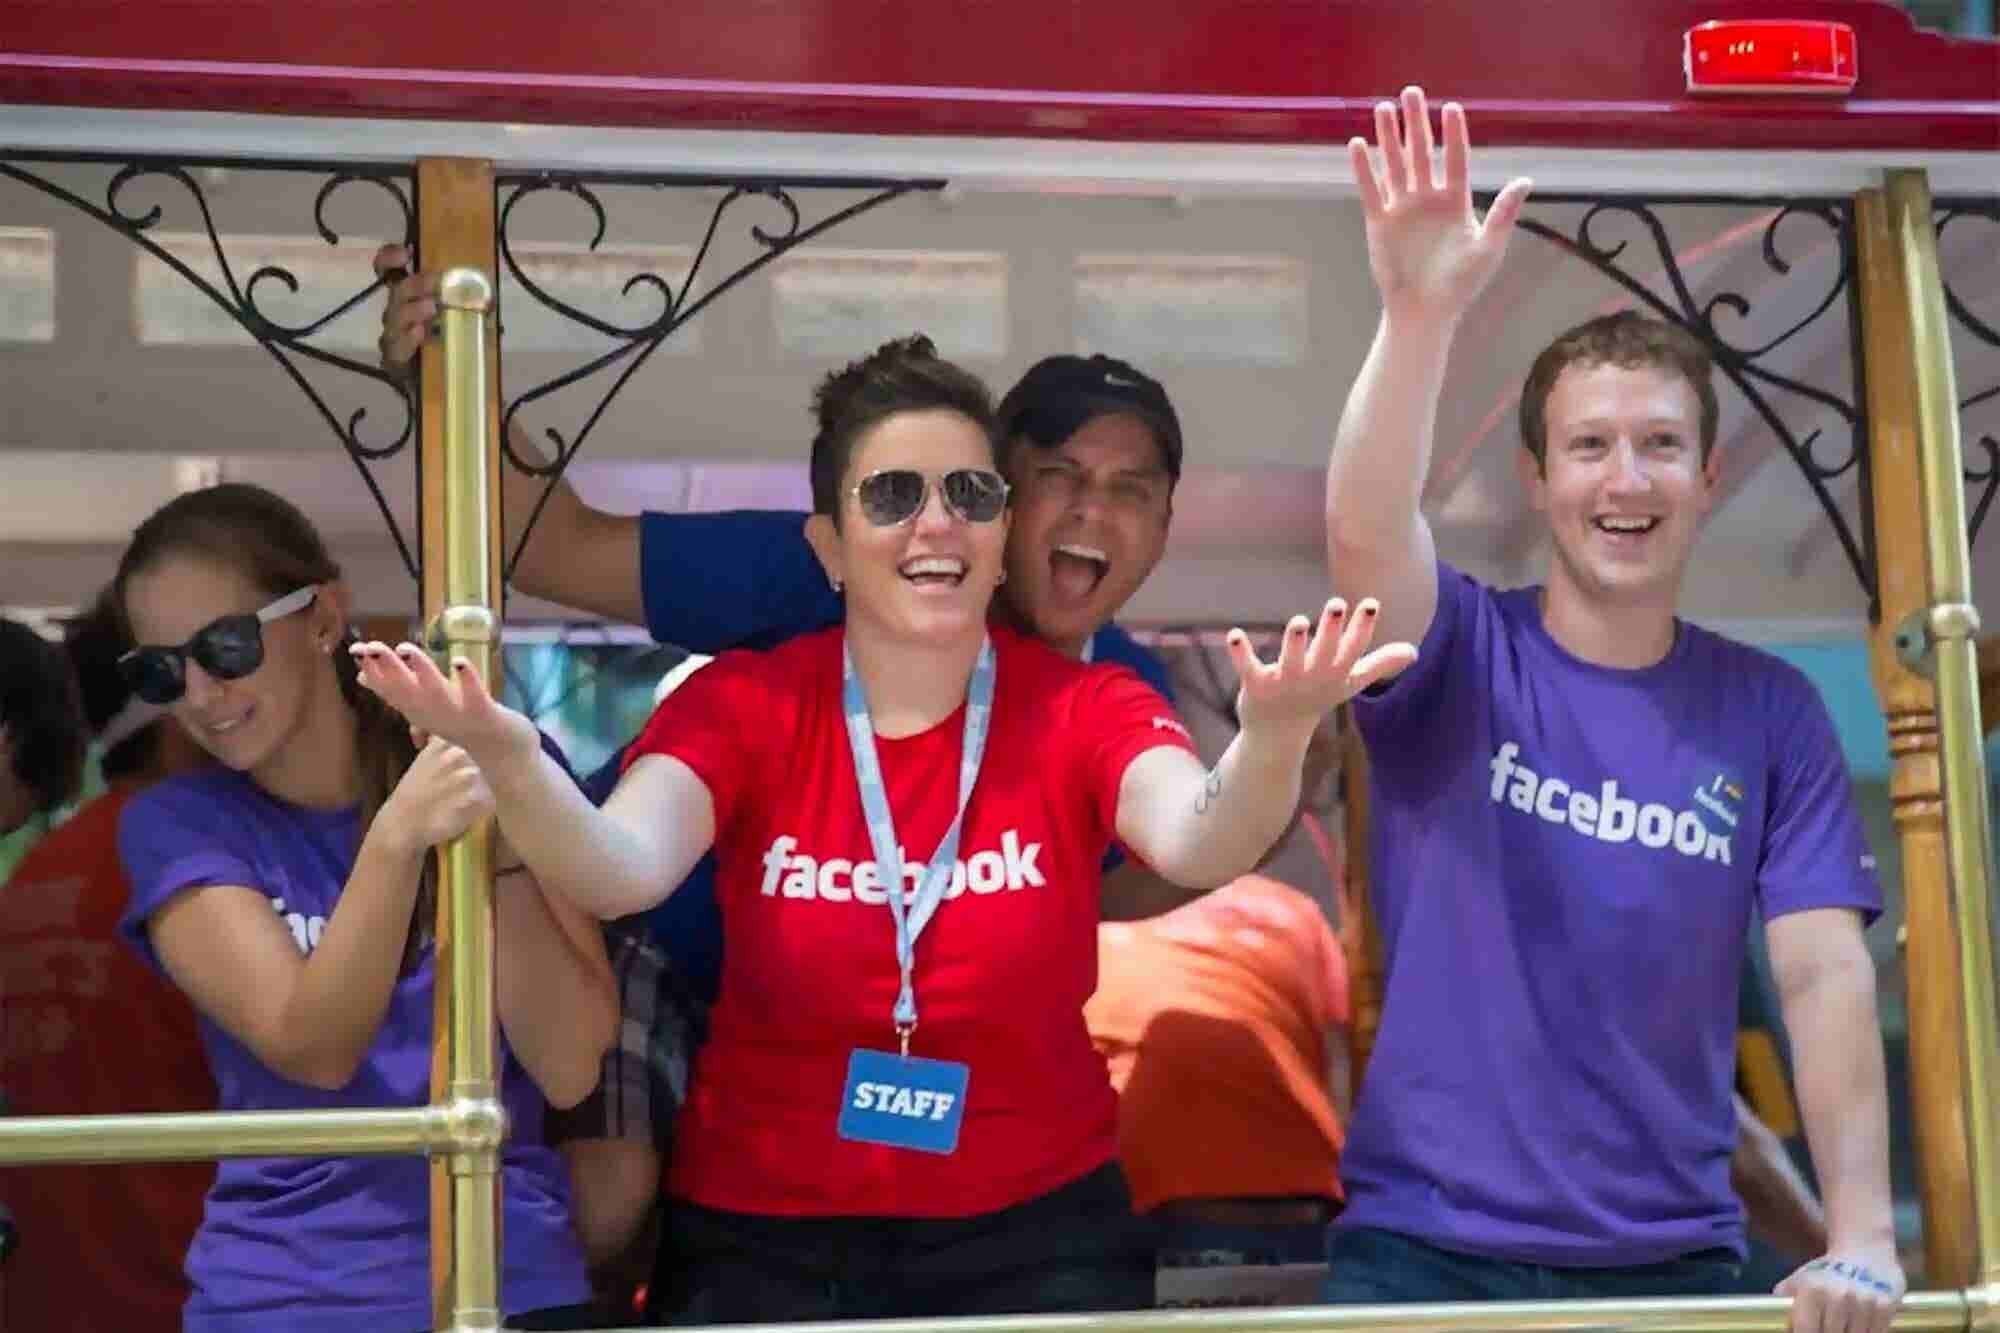 Facebook Is Going to Start Handing Out Employee Bonuses If They Help t...